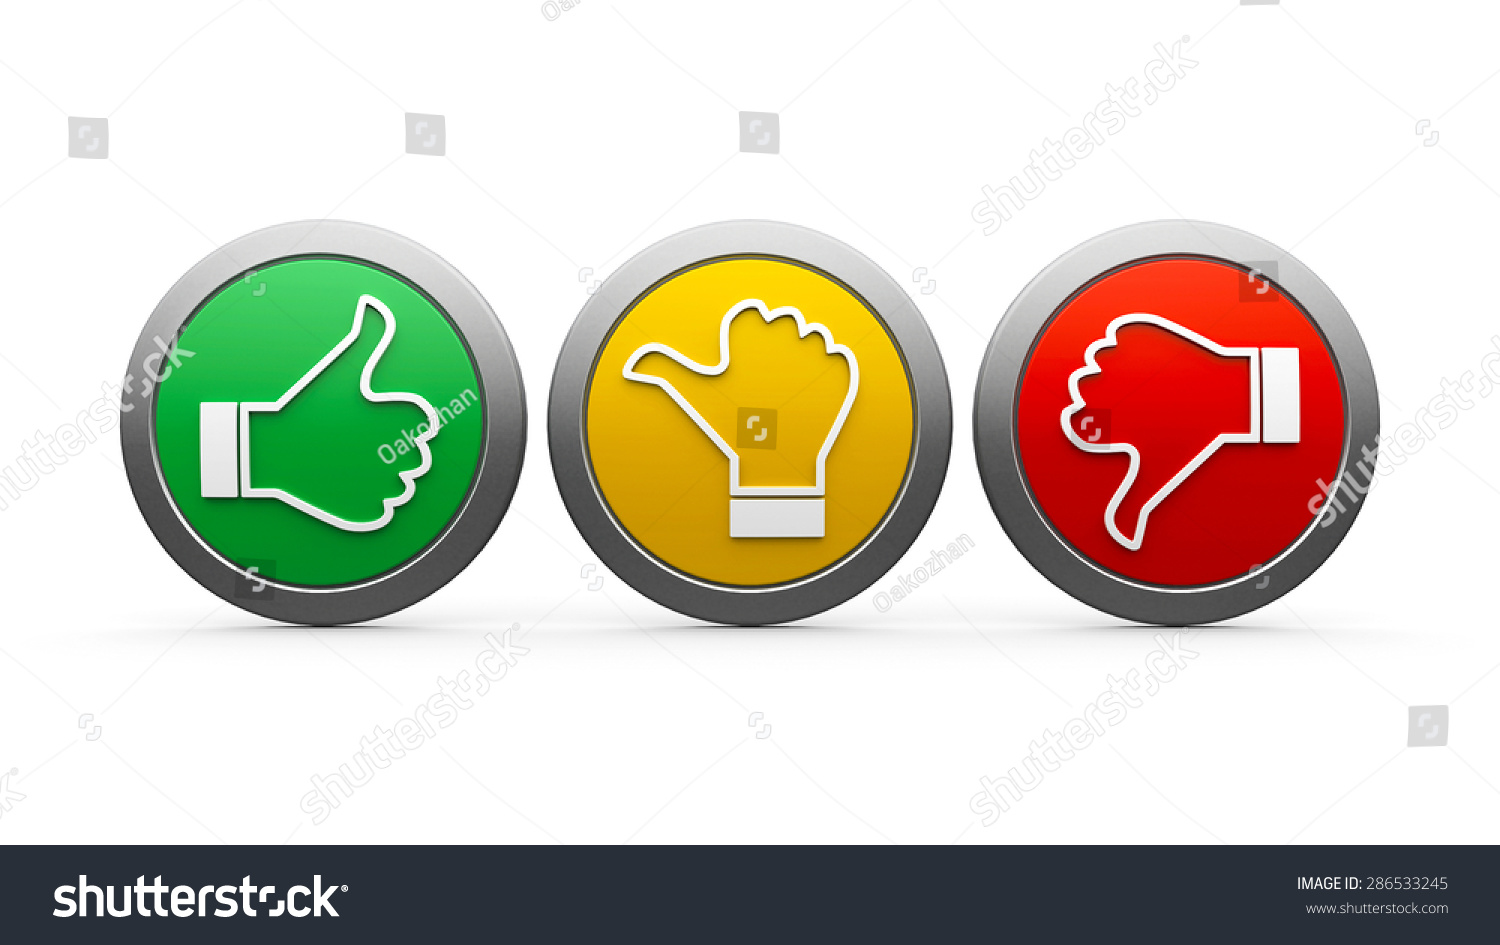 Https Www Shutterstock Com Image Illustration Positive Neutral Negative Icons Isolated On 286533245